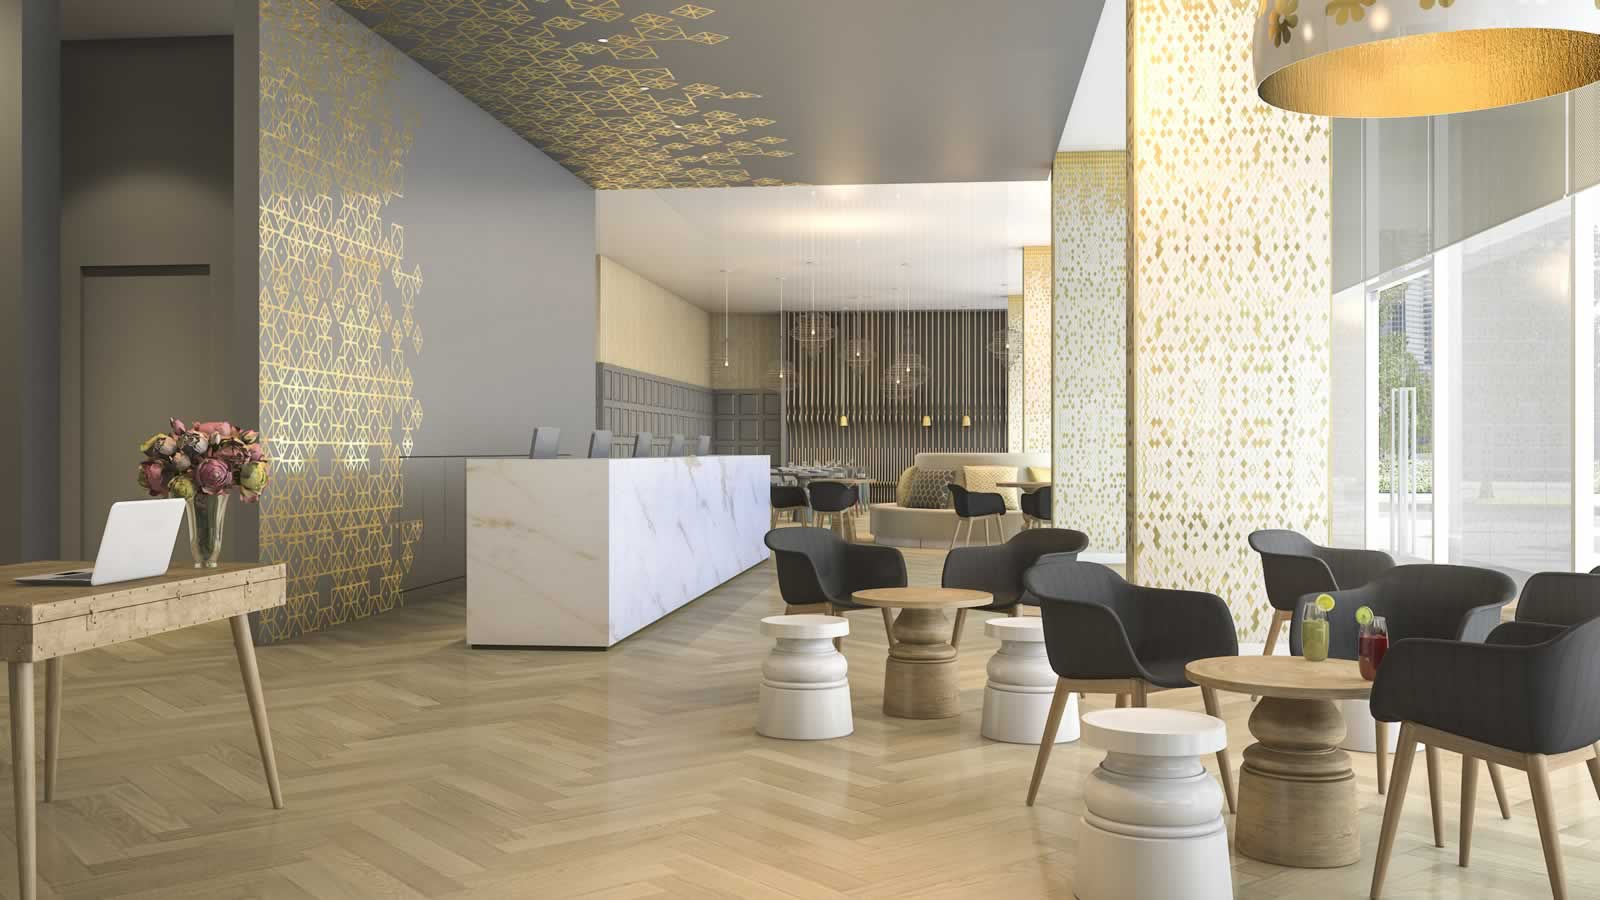 Corporate Lobby interior design